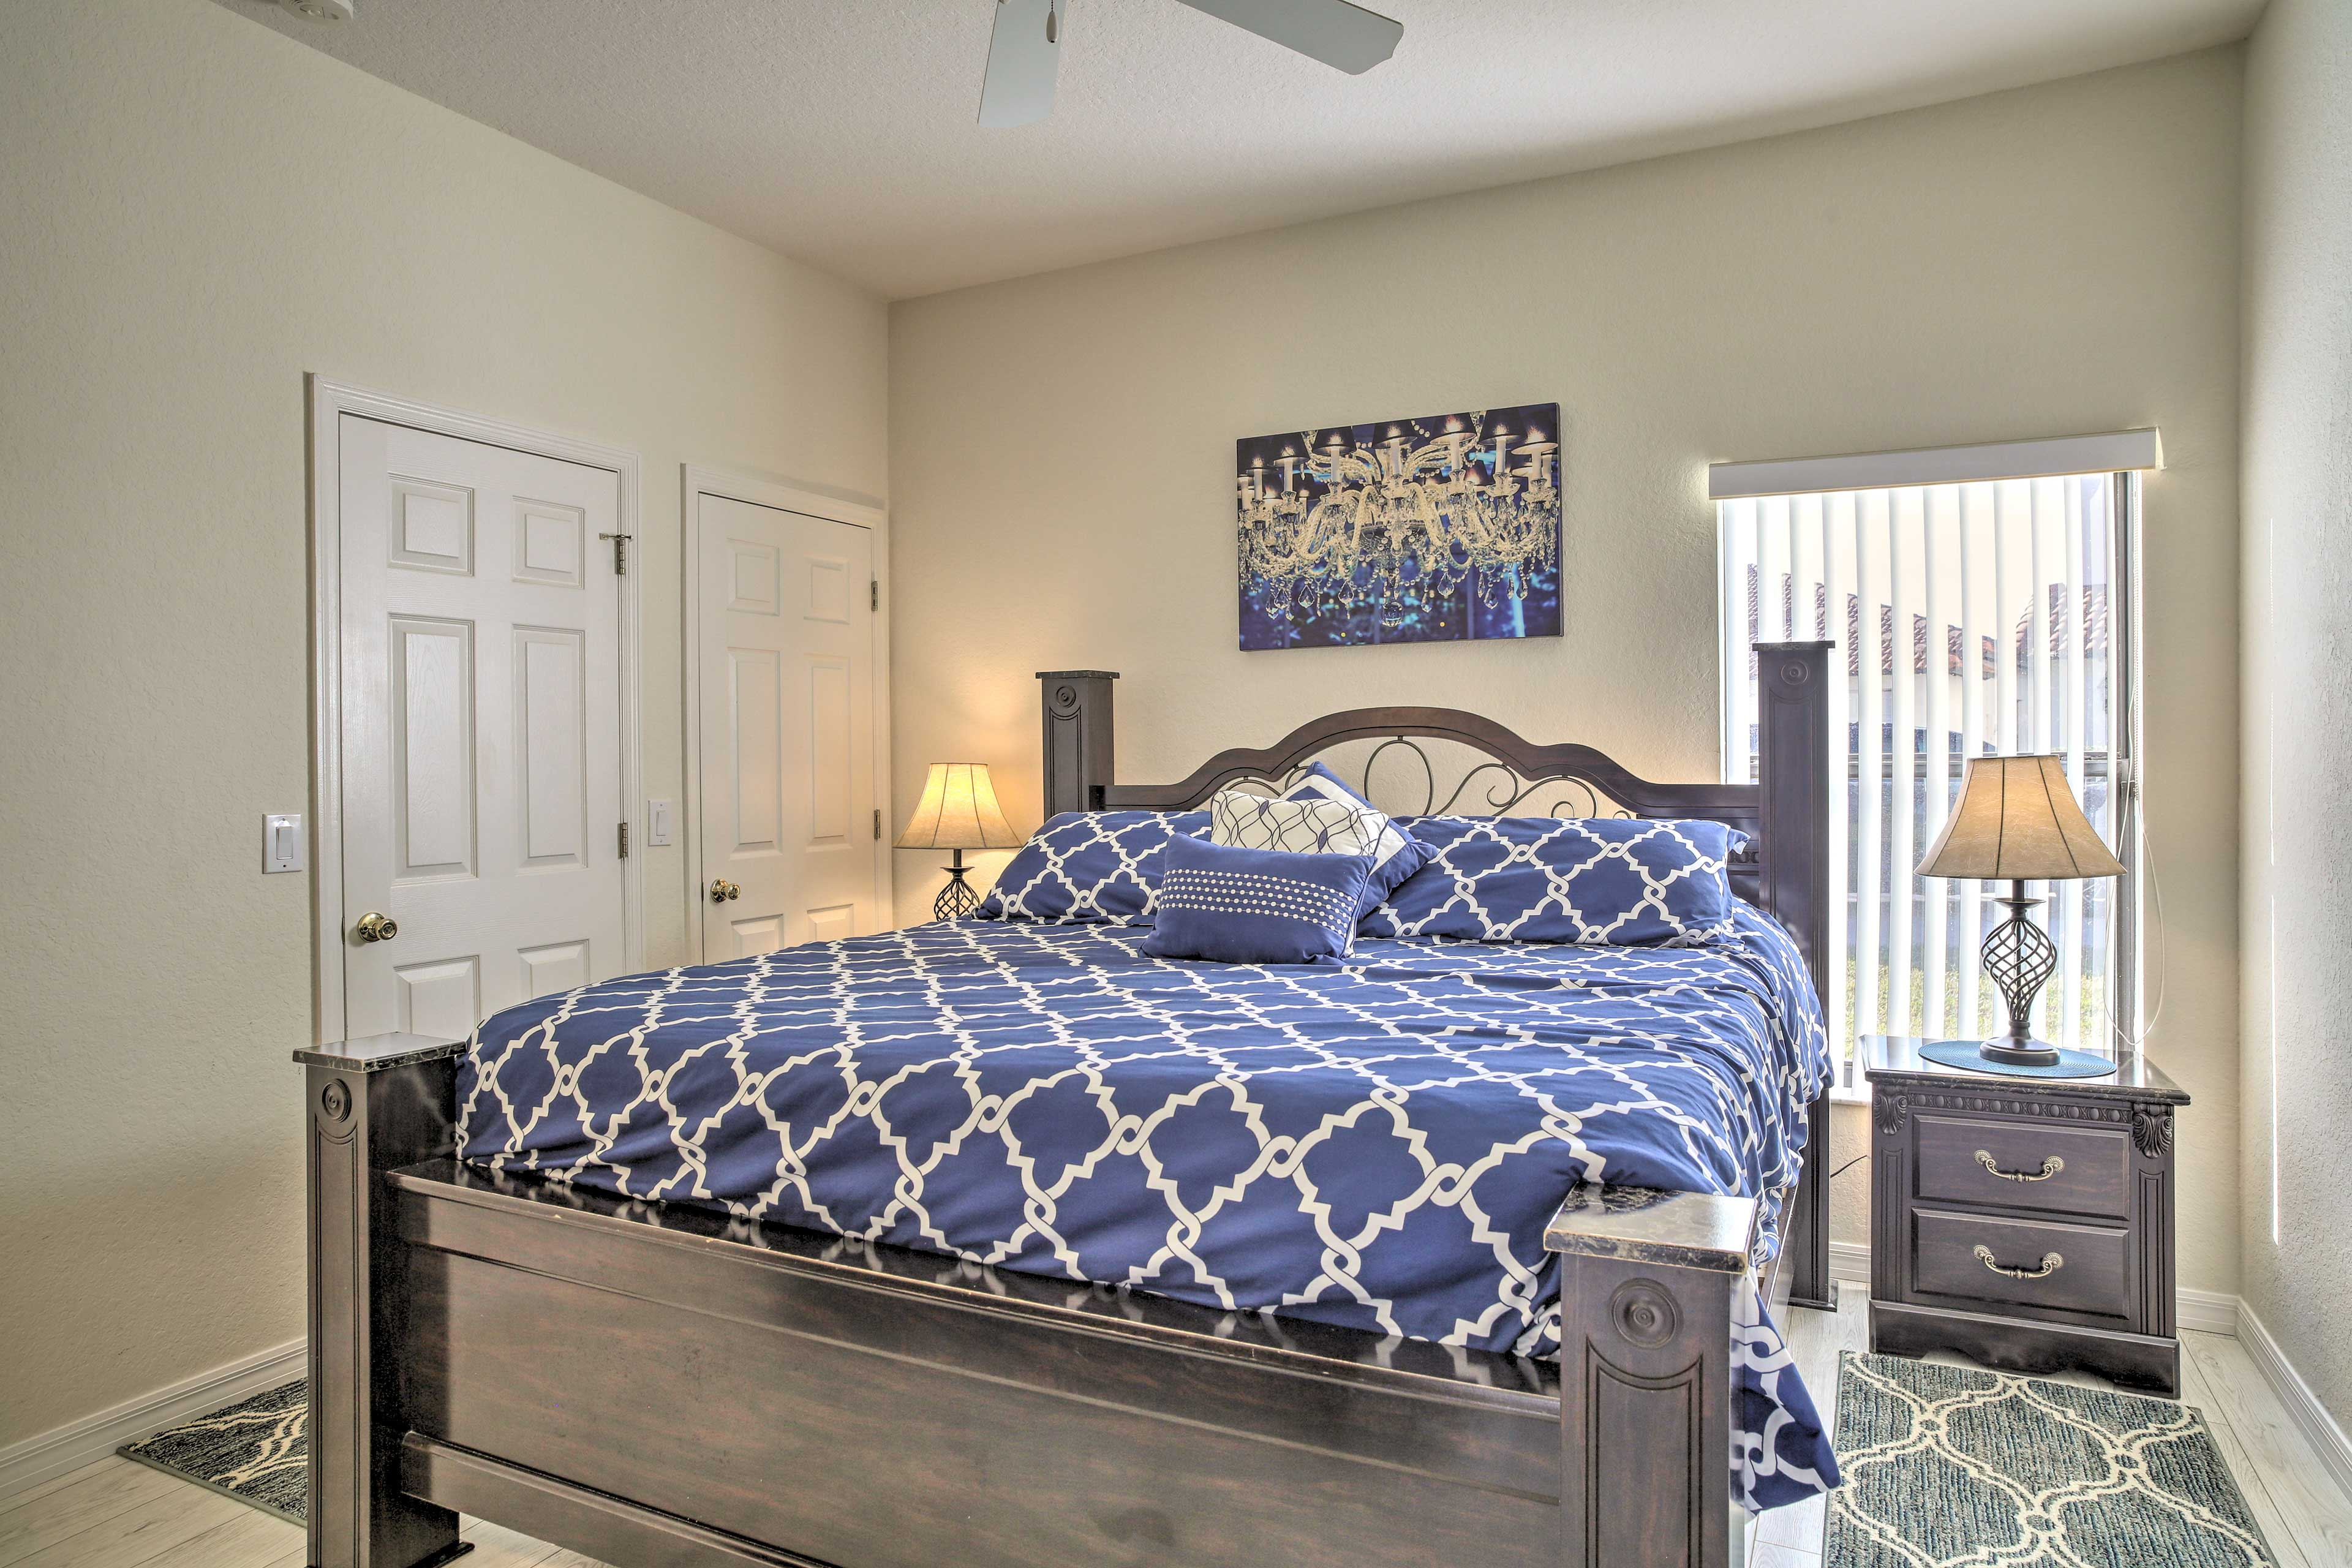 Catch up on some much-needed sleep in this cozy king-sized bed.